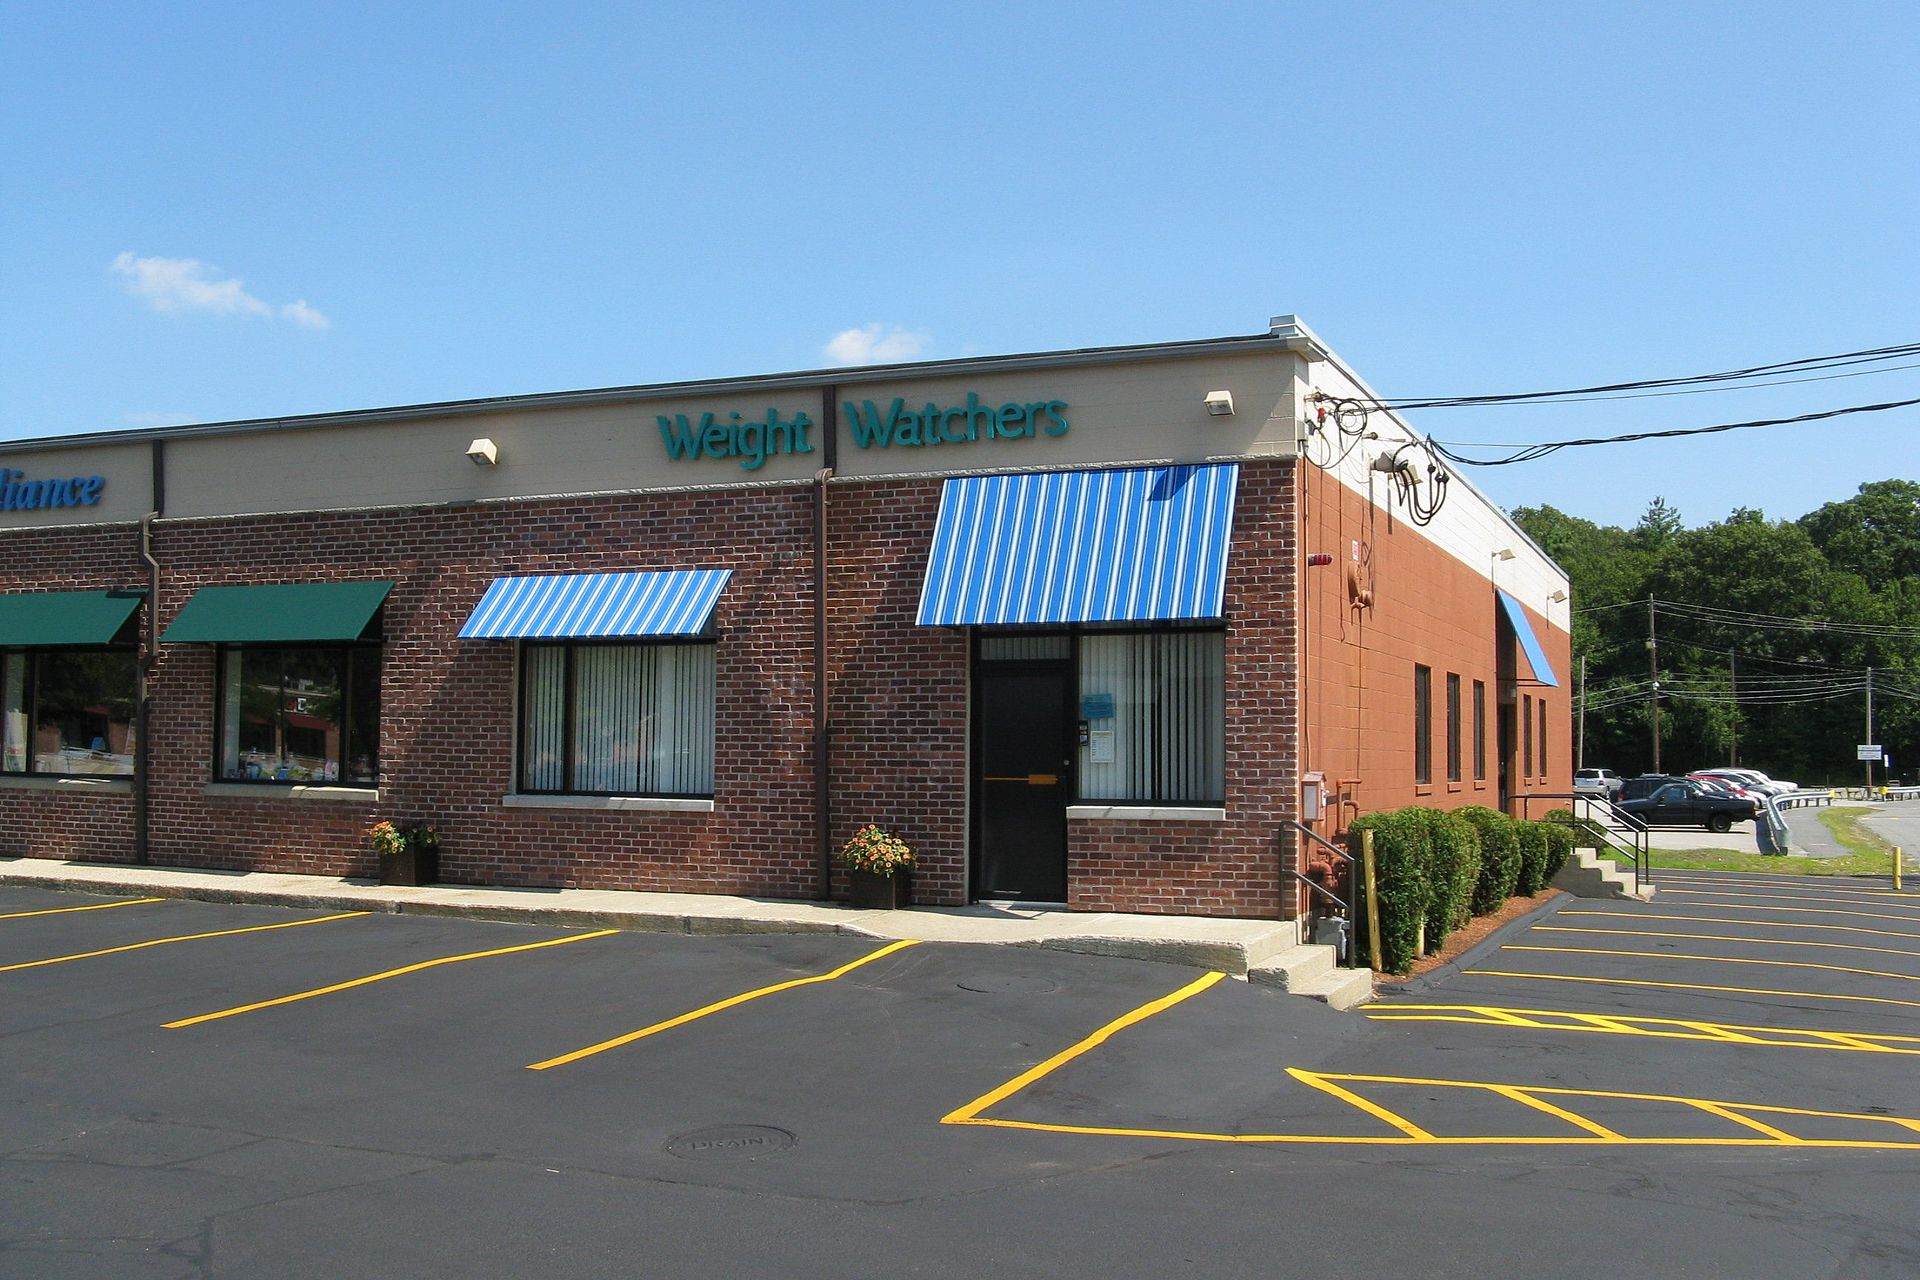 Weight Watchers - Wikipedia